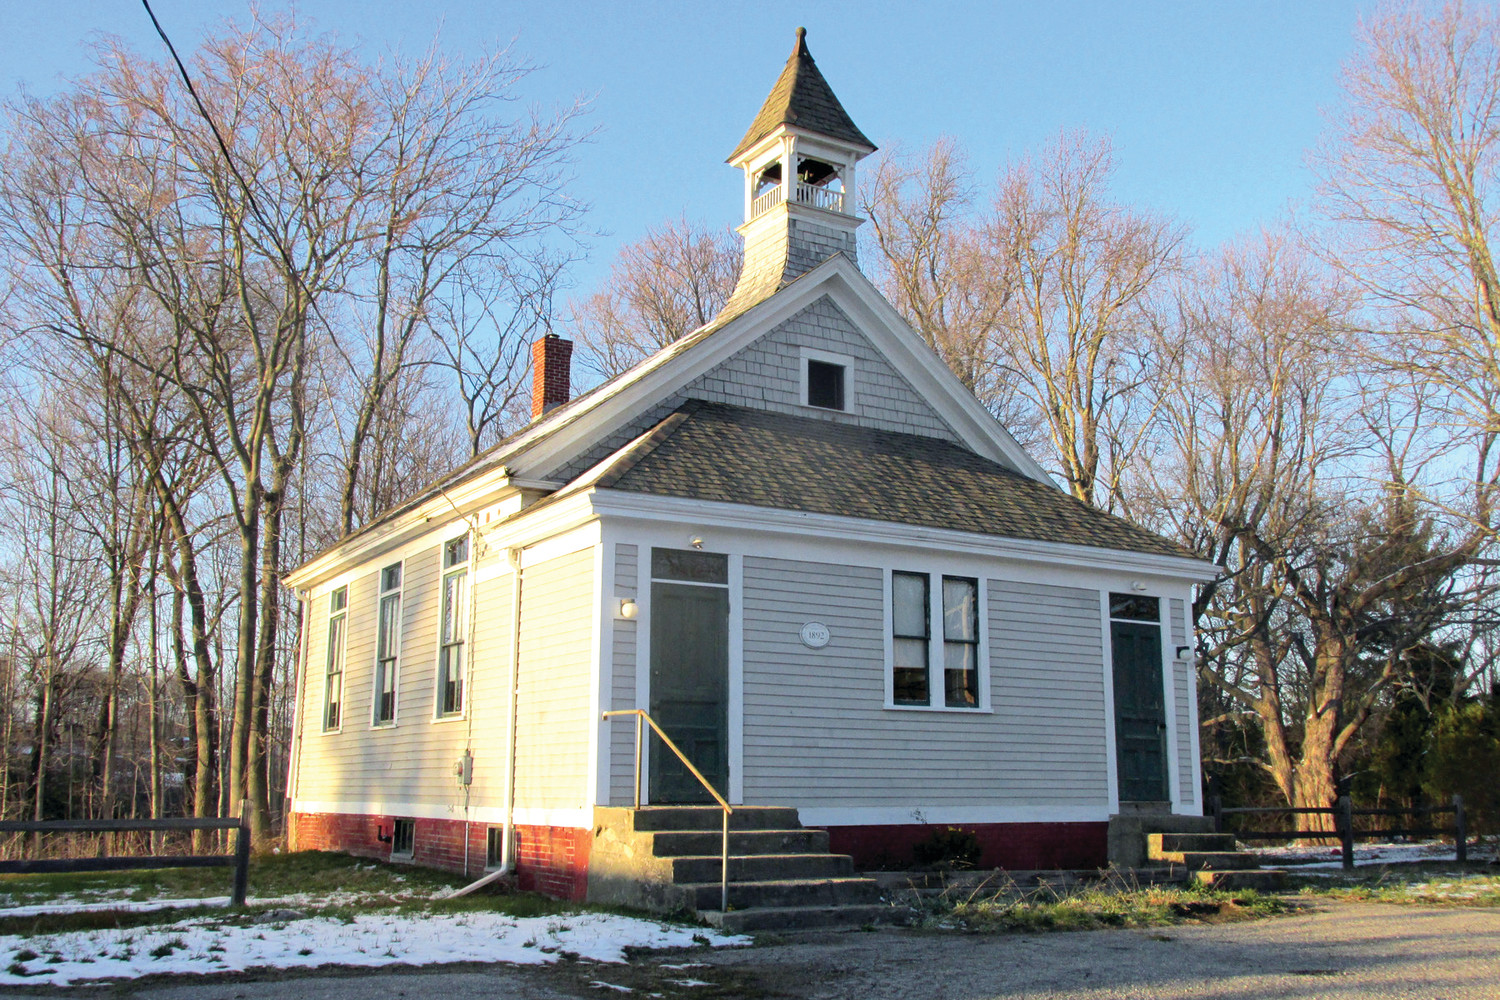 READY FOR RESTORATION: The historic Belknap School on Greenville Avenue will soon get a major facelift after a restoration project was recently approved.  (Sun Rise photo)